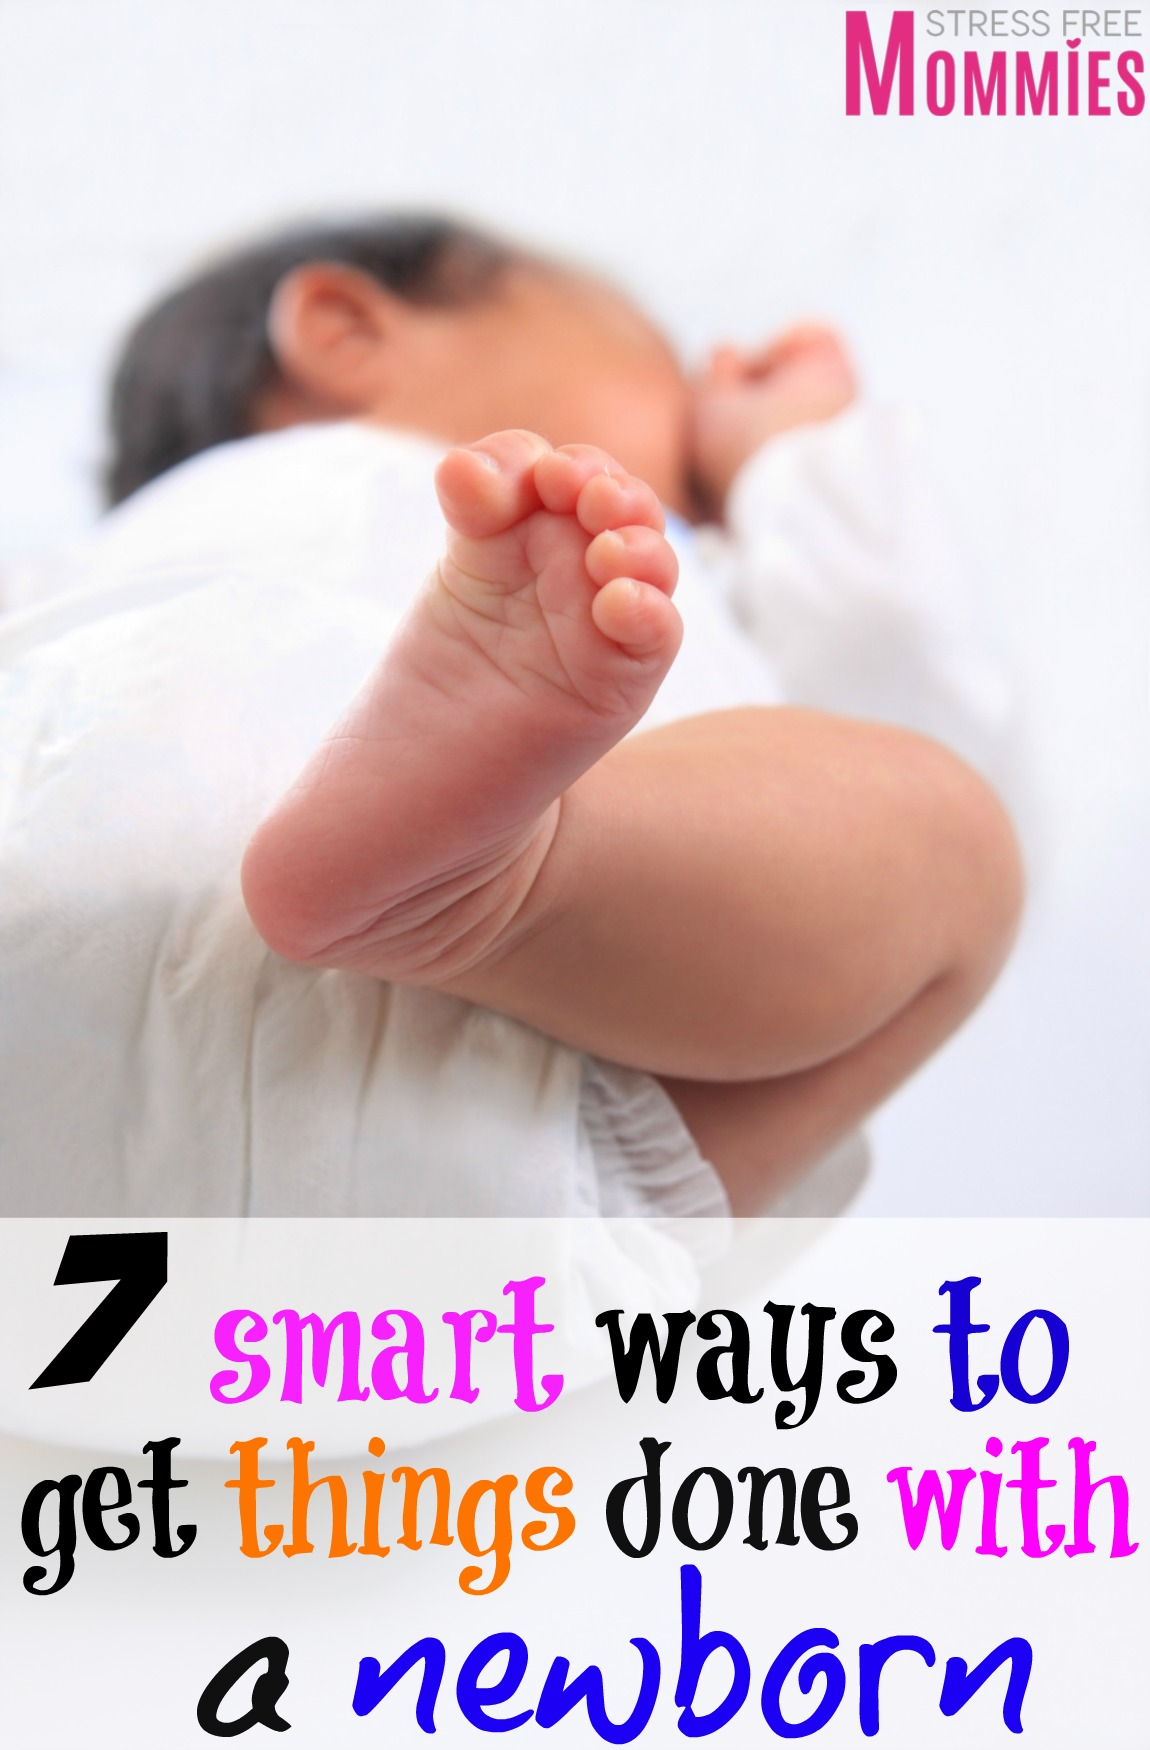 7 smart ways to get things done with a newborn